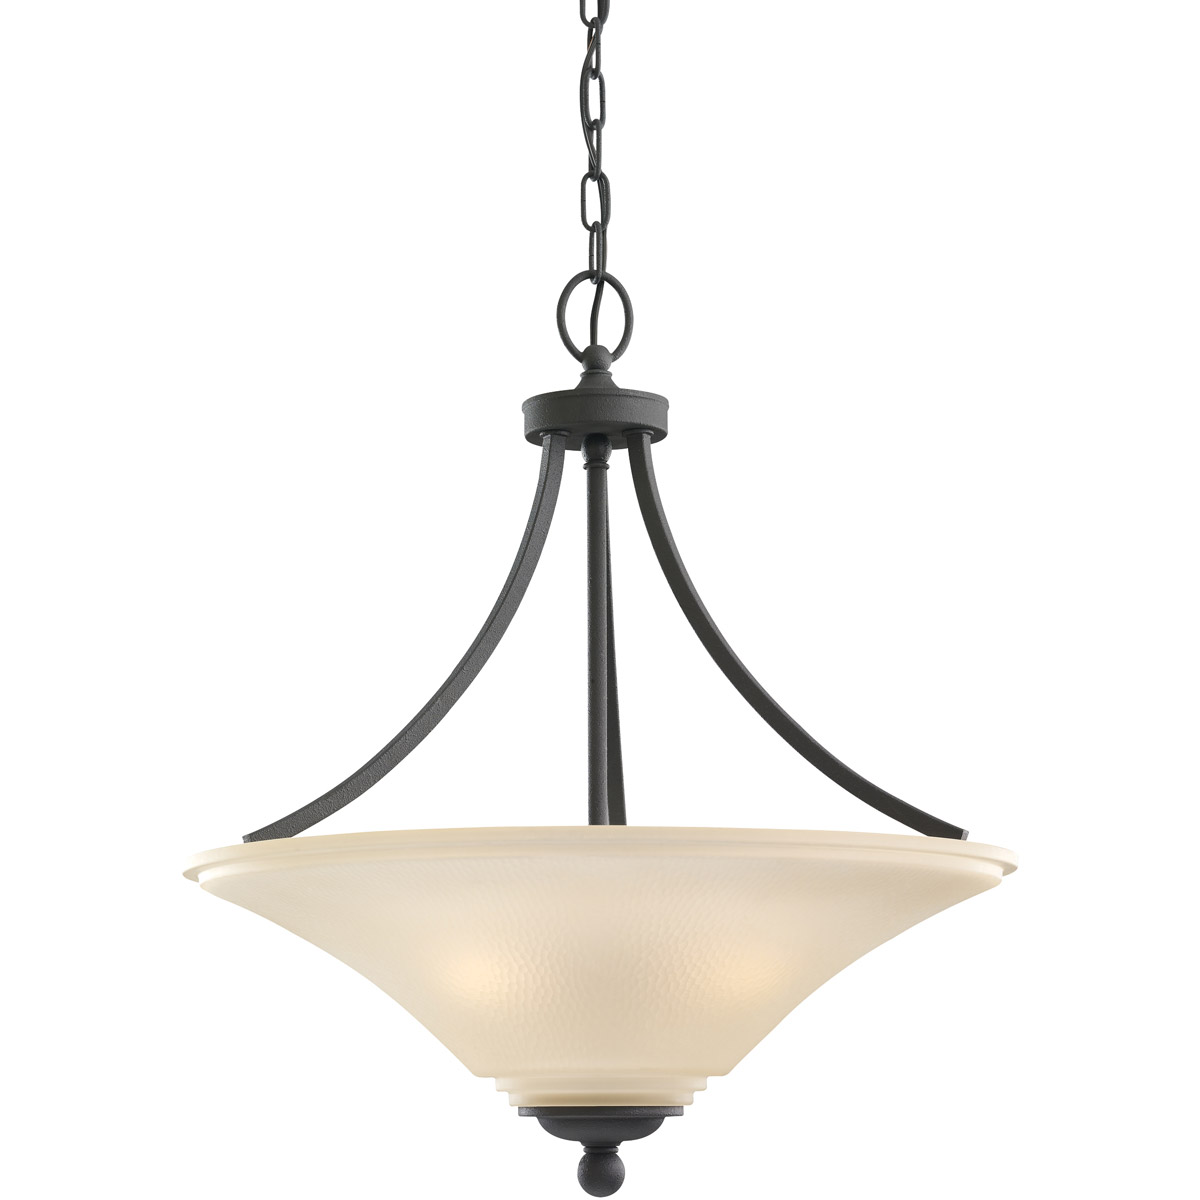 Sea Gull 65376-839 Somerton 3 Light 21 inch Blacksmith Pendant Ceiling Light in Cafe Tint Glass, Standard photo